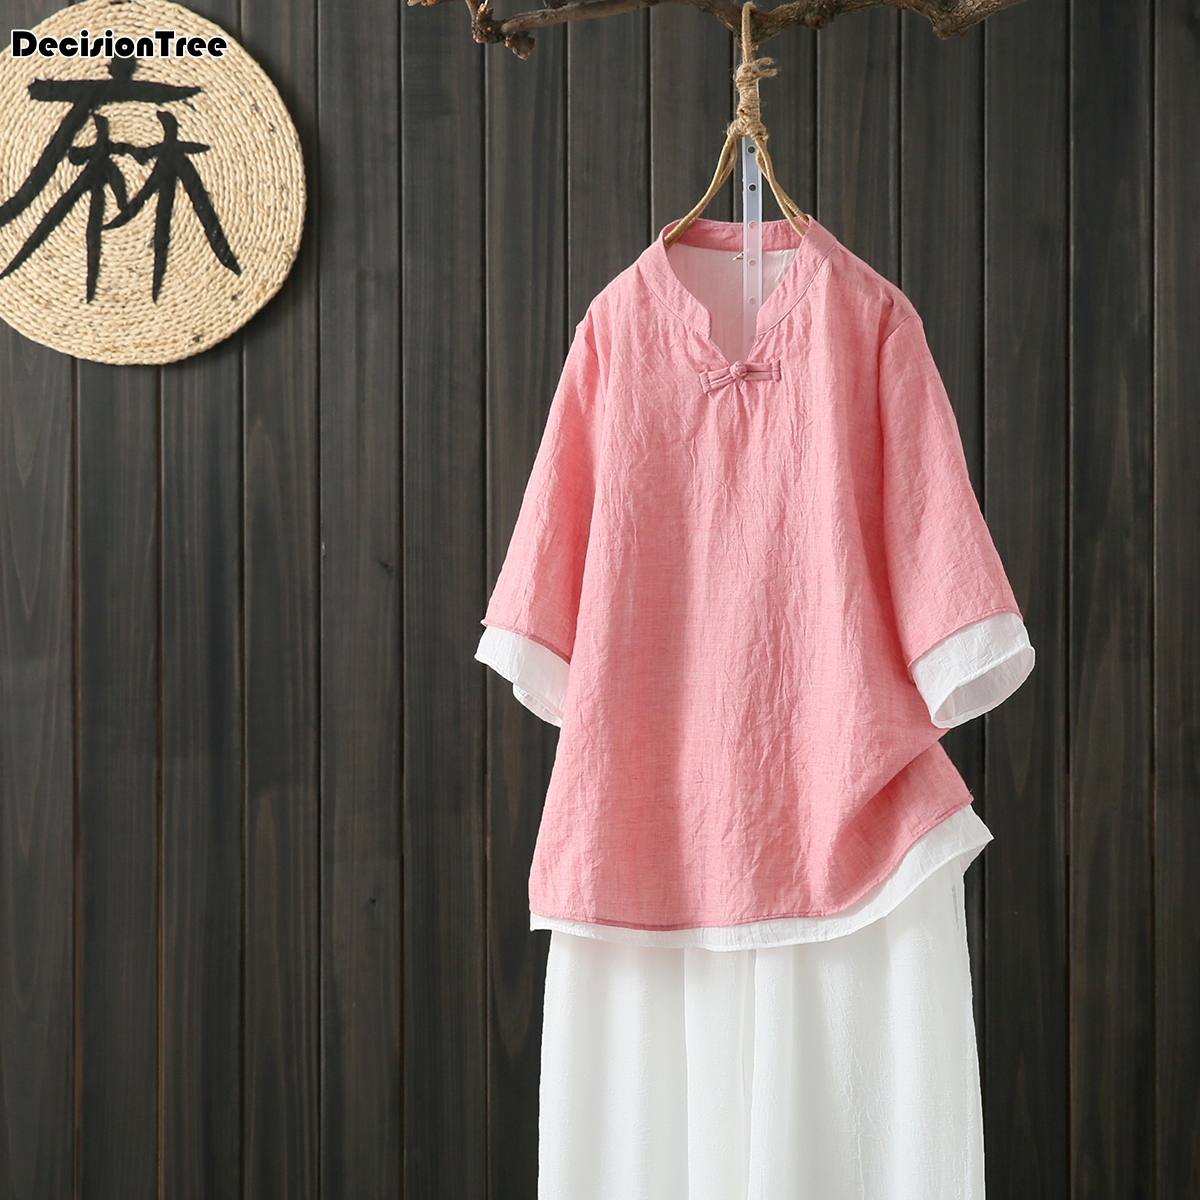 2020 female tang suit women chinese tops cheongsam vintage cheongsams traditional loose hanfu china clothing female lady image